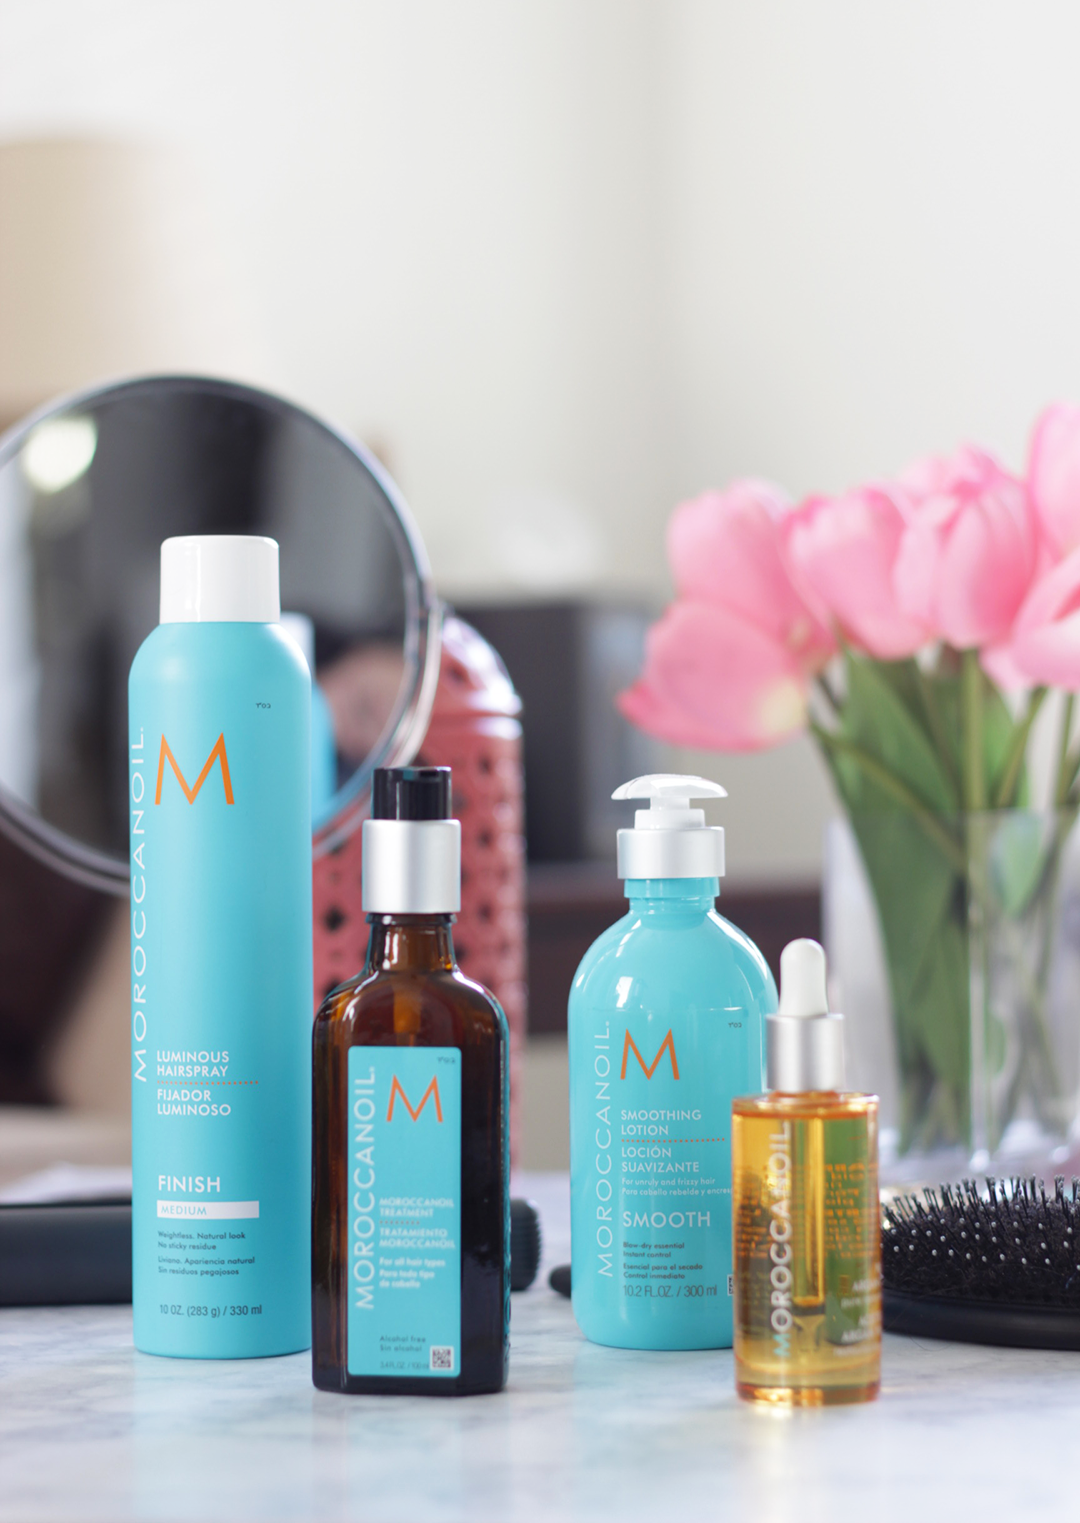 New Year, New Haircare routine, right? Time to say goodbye to frizzy, unruly hair and hello to soft, nourished hair thanks to help from Morrocanoil. Keep reading and see why Jamie is obsessed with this Argan infused line- #ArganEveryday #ad